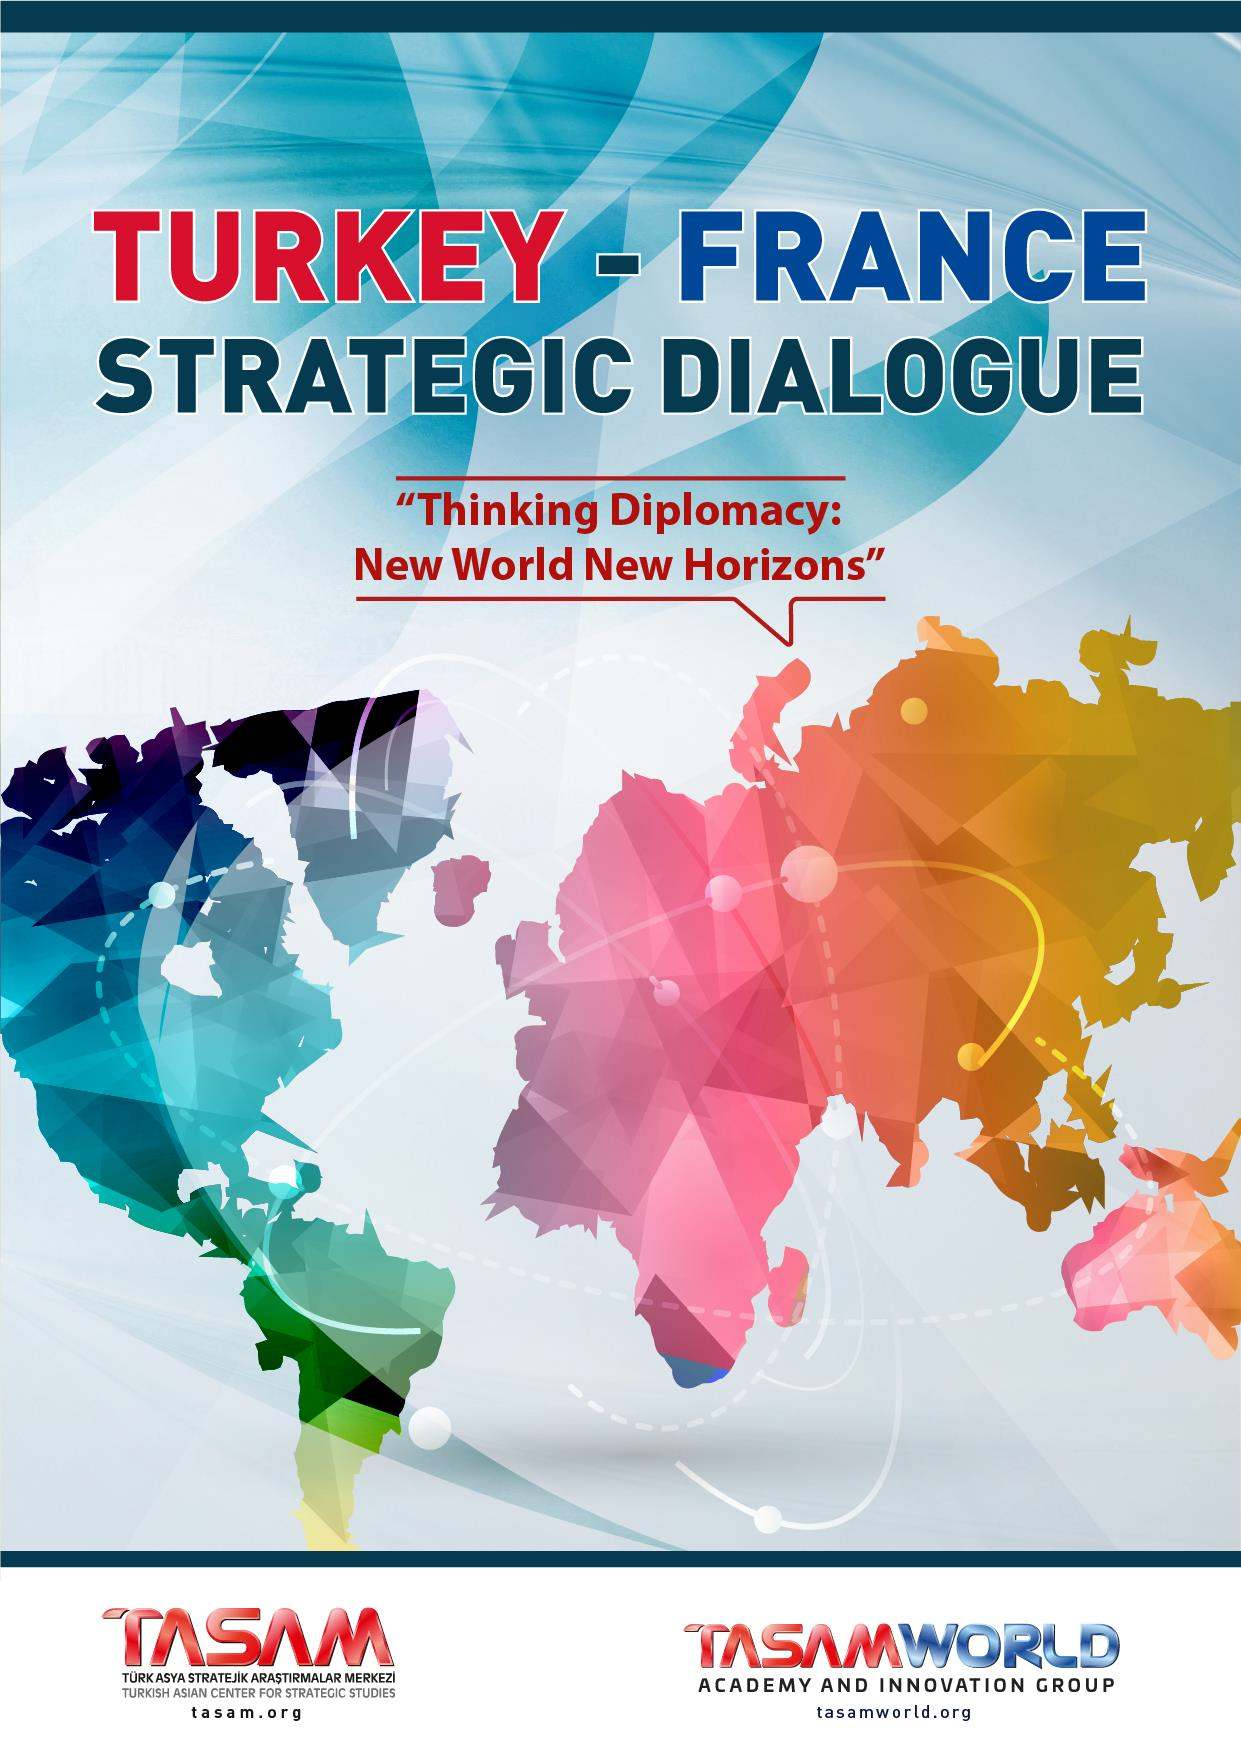 Turkey - France Strategic Dialogue